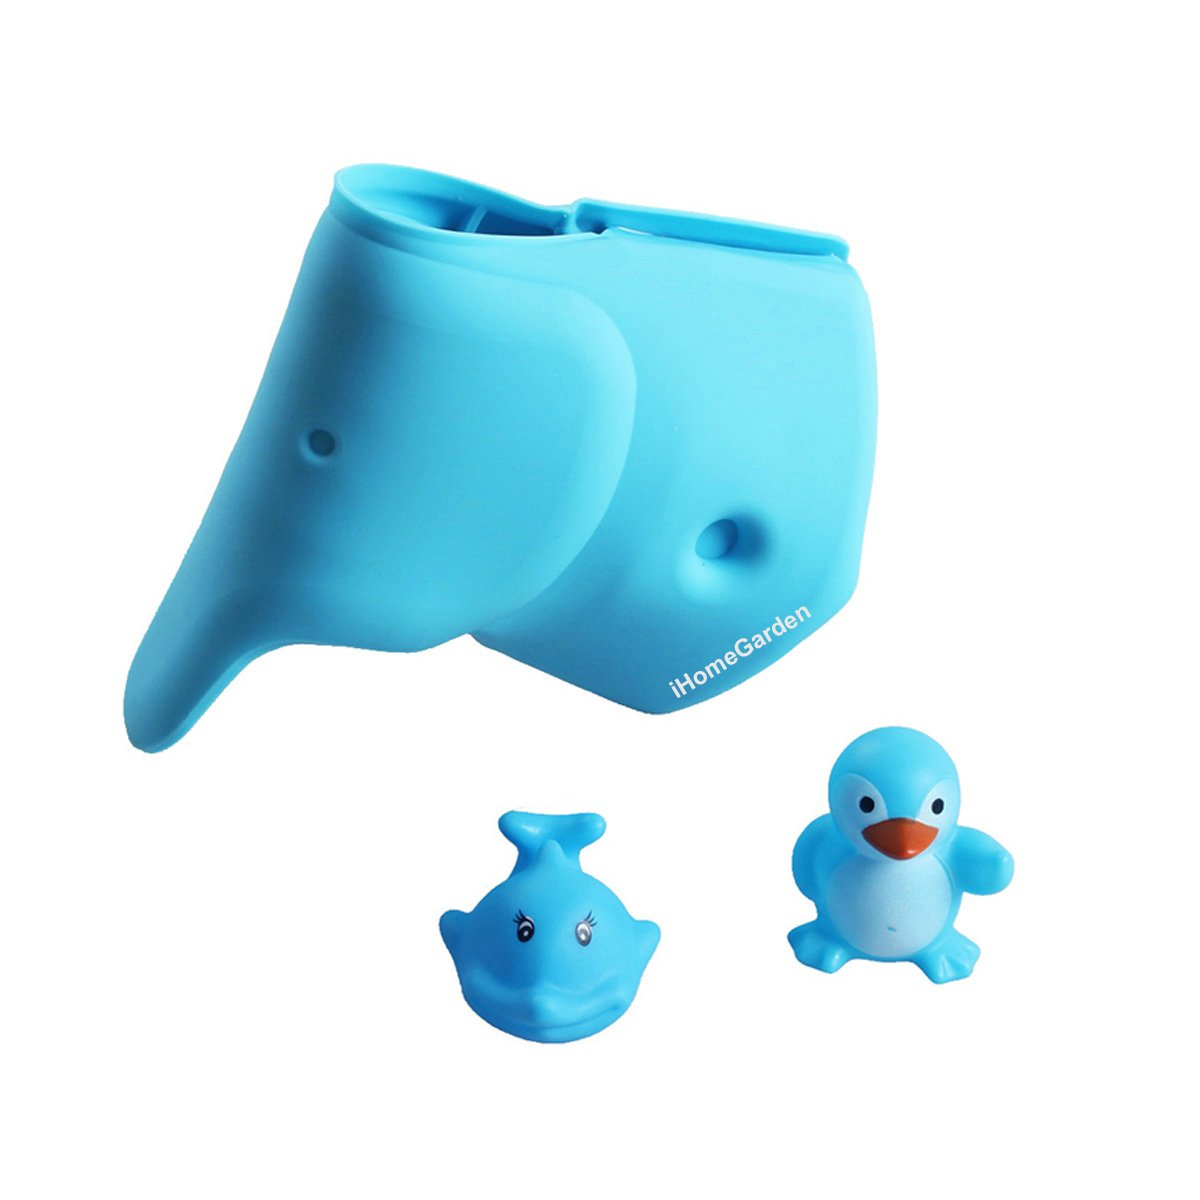 Baby Blue Bathroom Set: Tub Faucet Cover For Baby